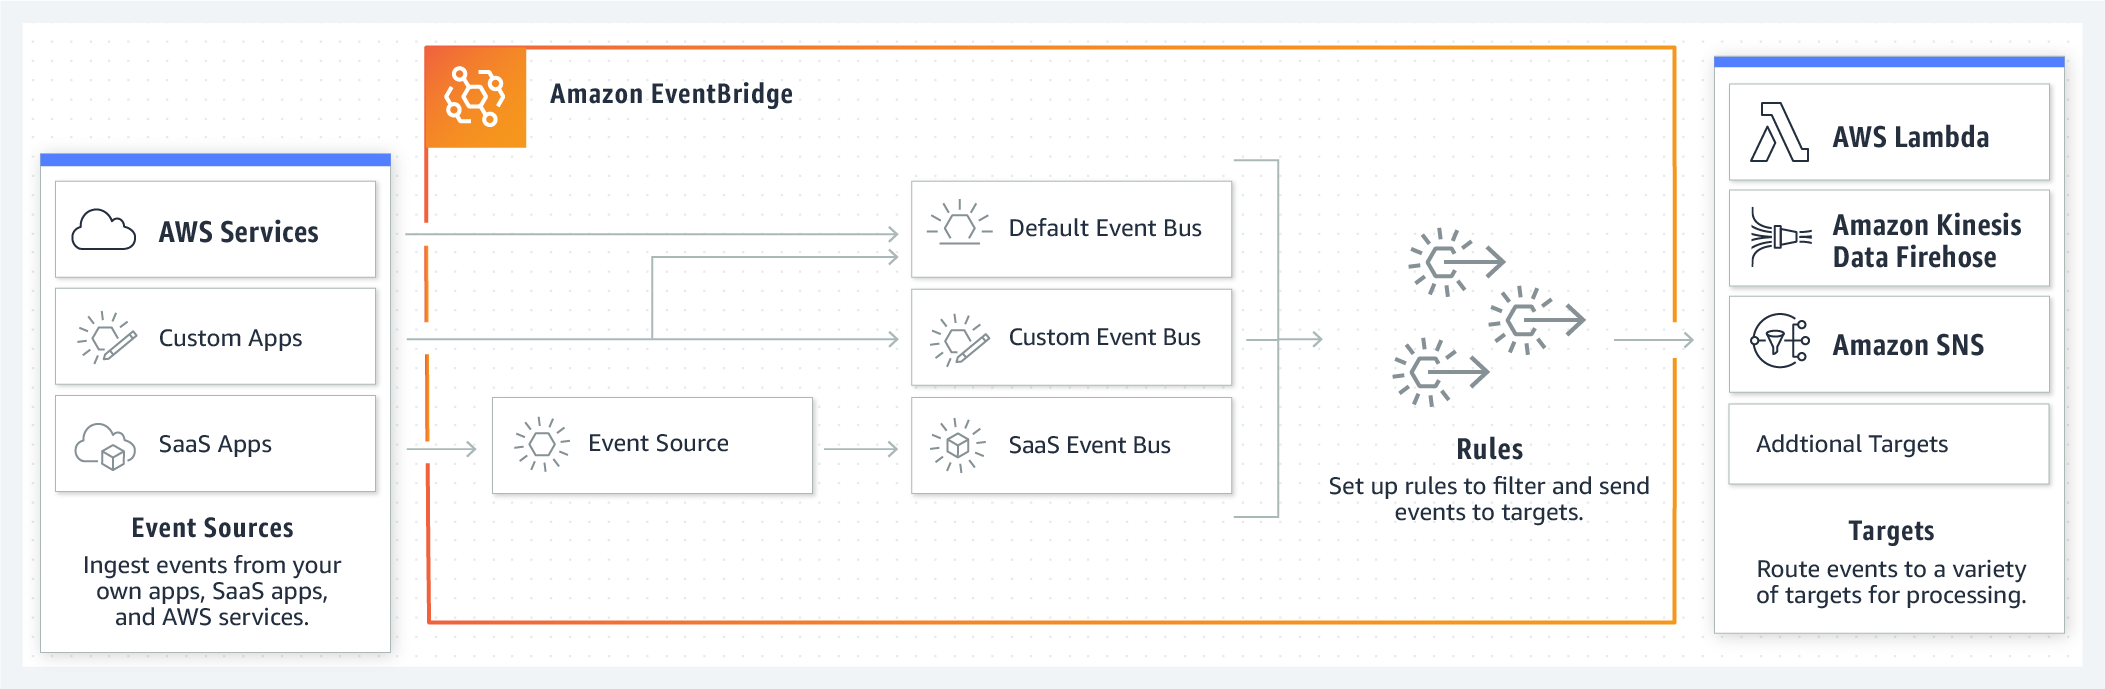 Amazon Event Bridge